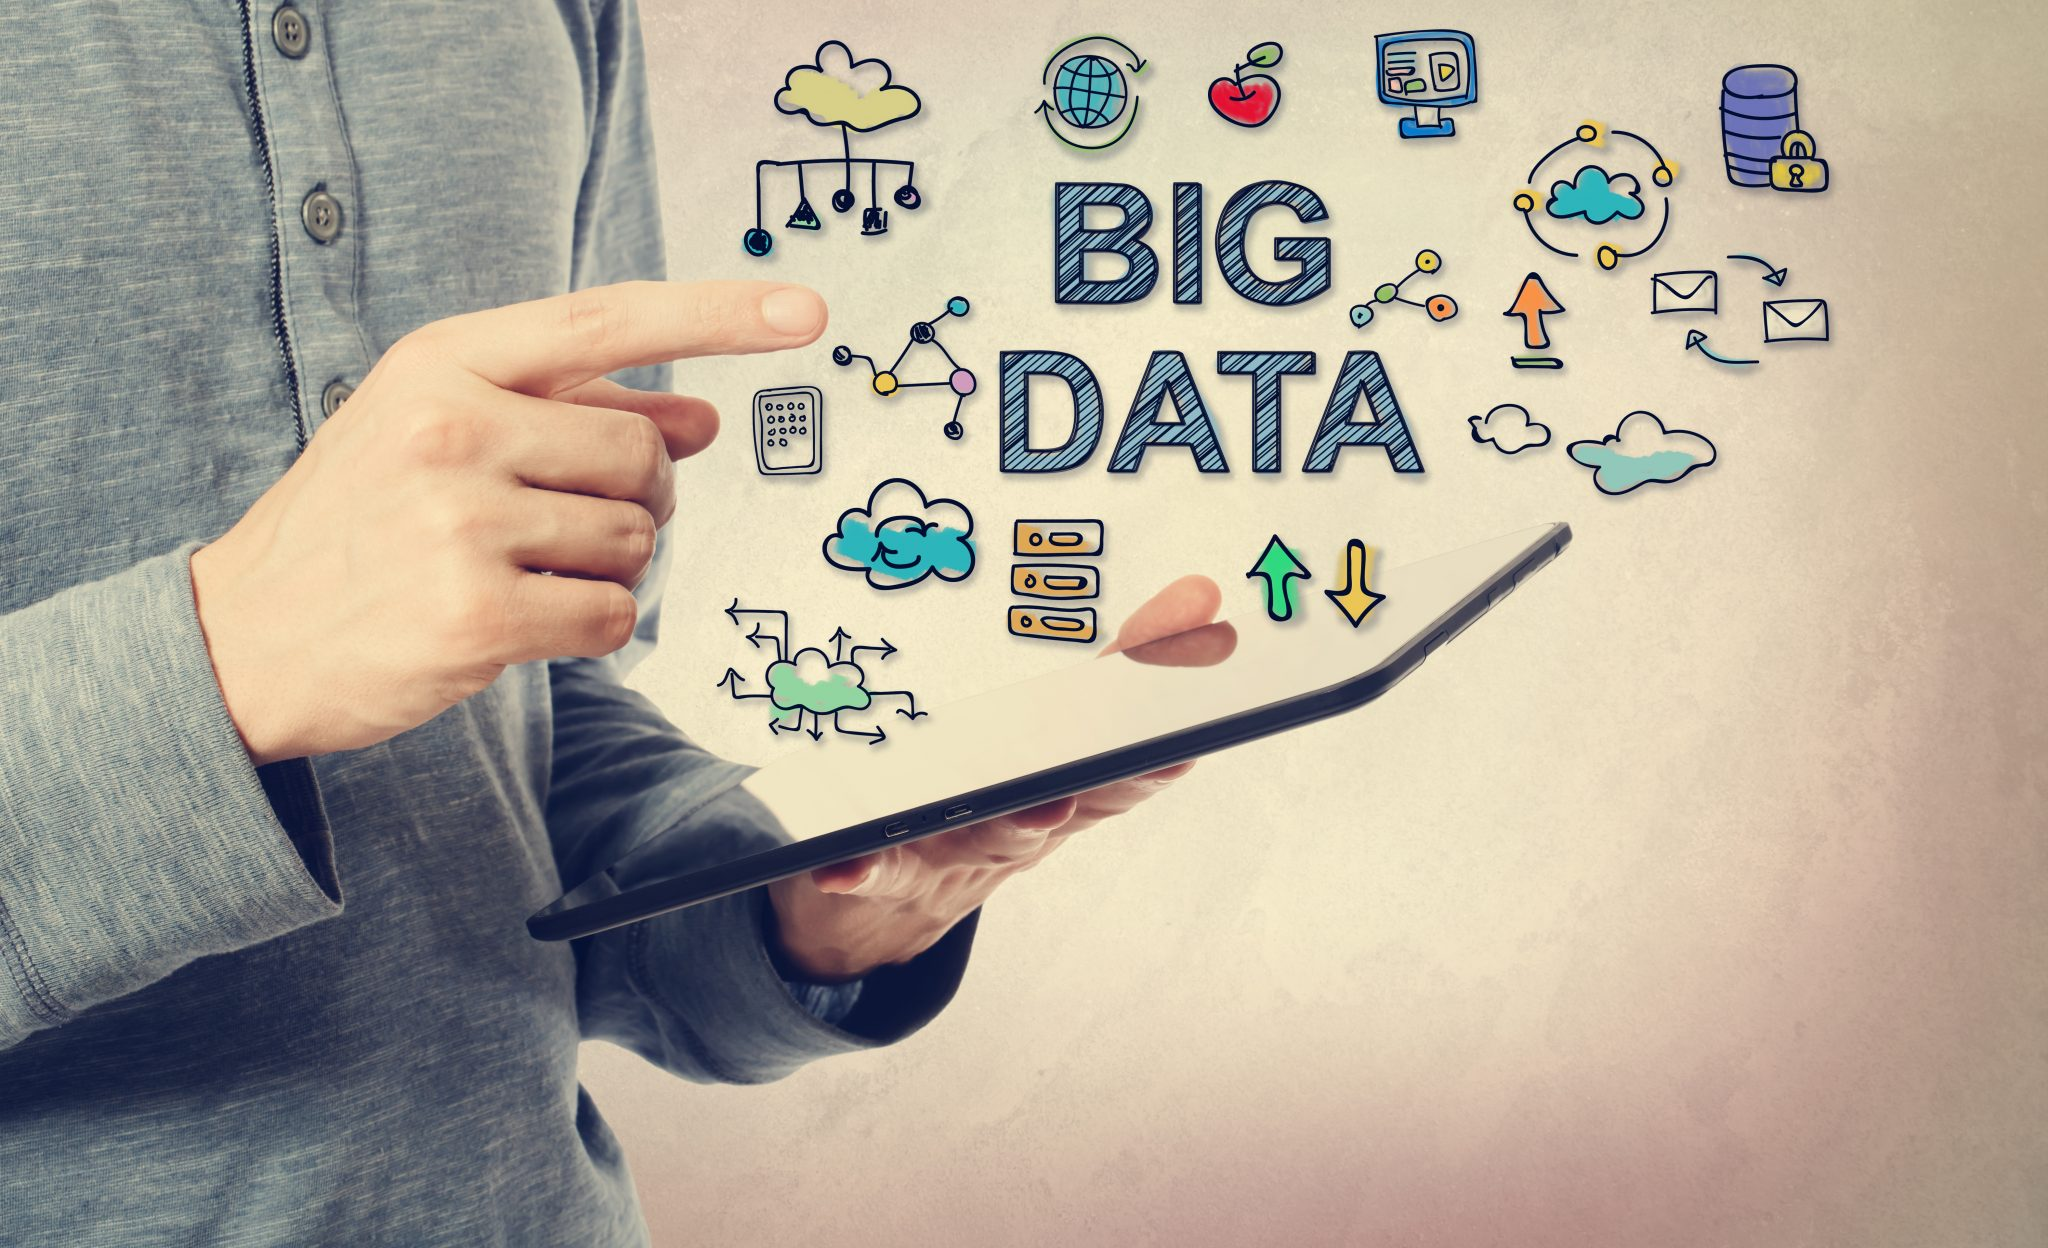 10 Must-Have Skills for Big Data Experts in 2019